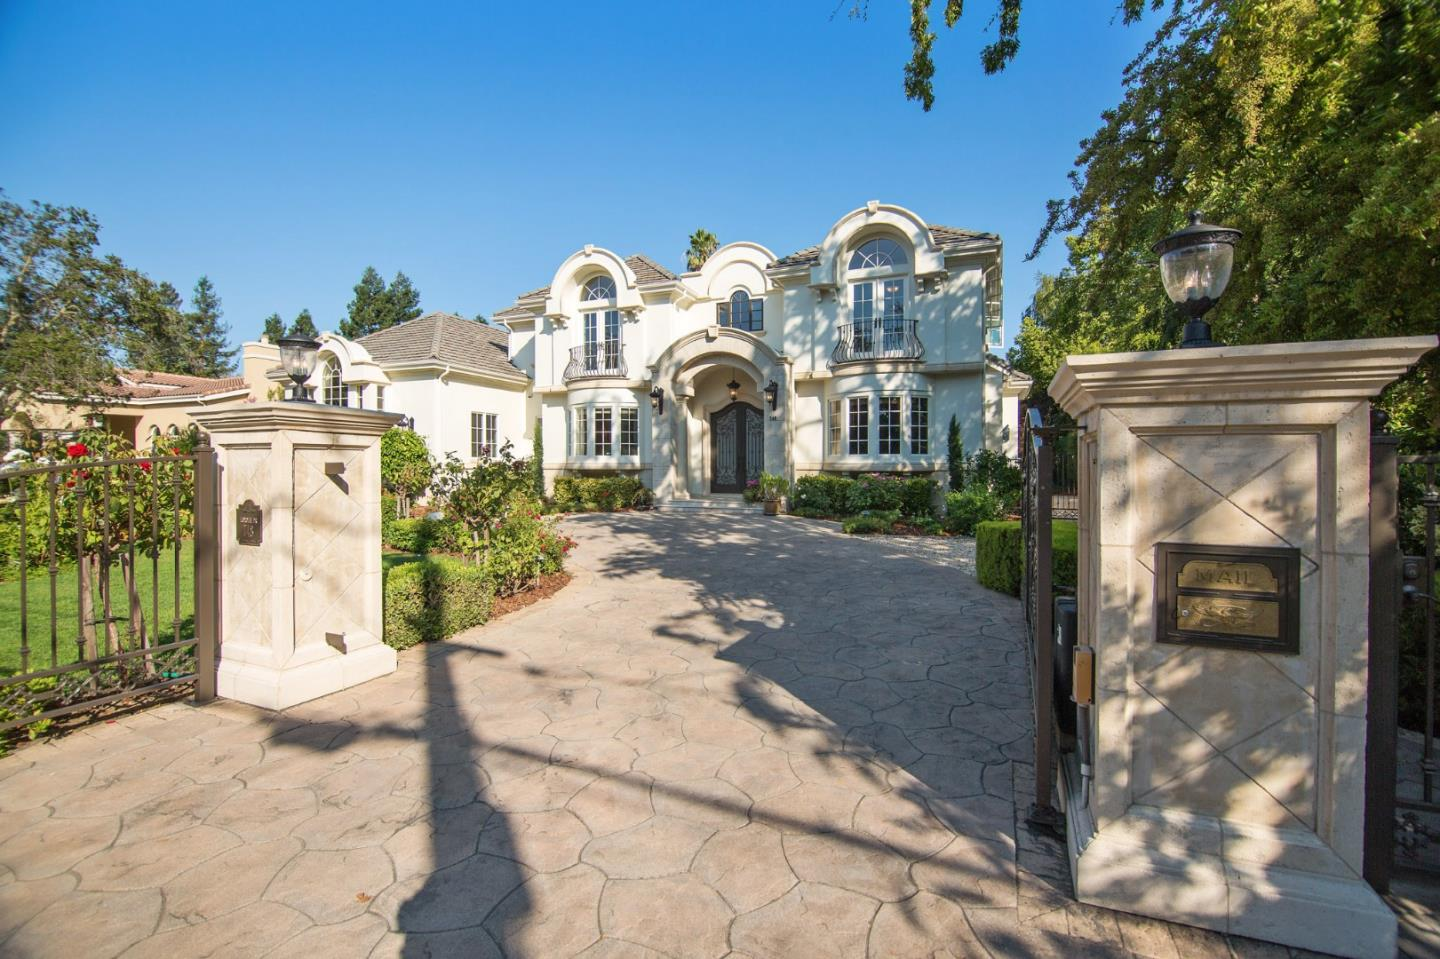 Single Family Home for Sale at 748 Loyola Drive 748 Loyola Drive Los Altos, California 94024 United States